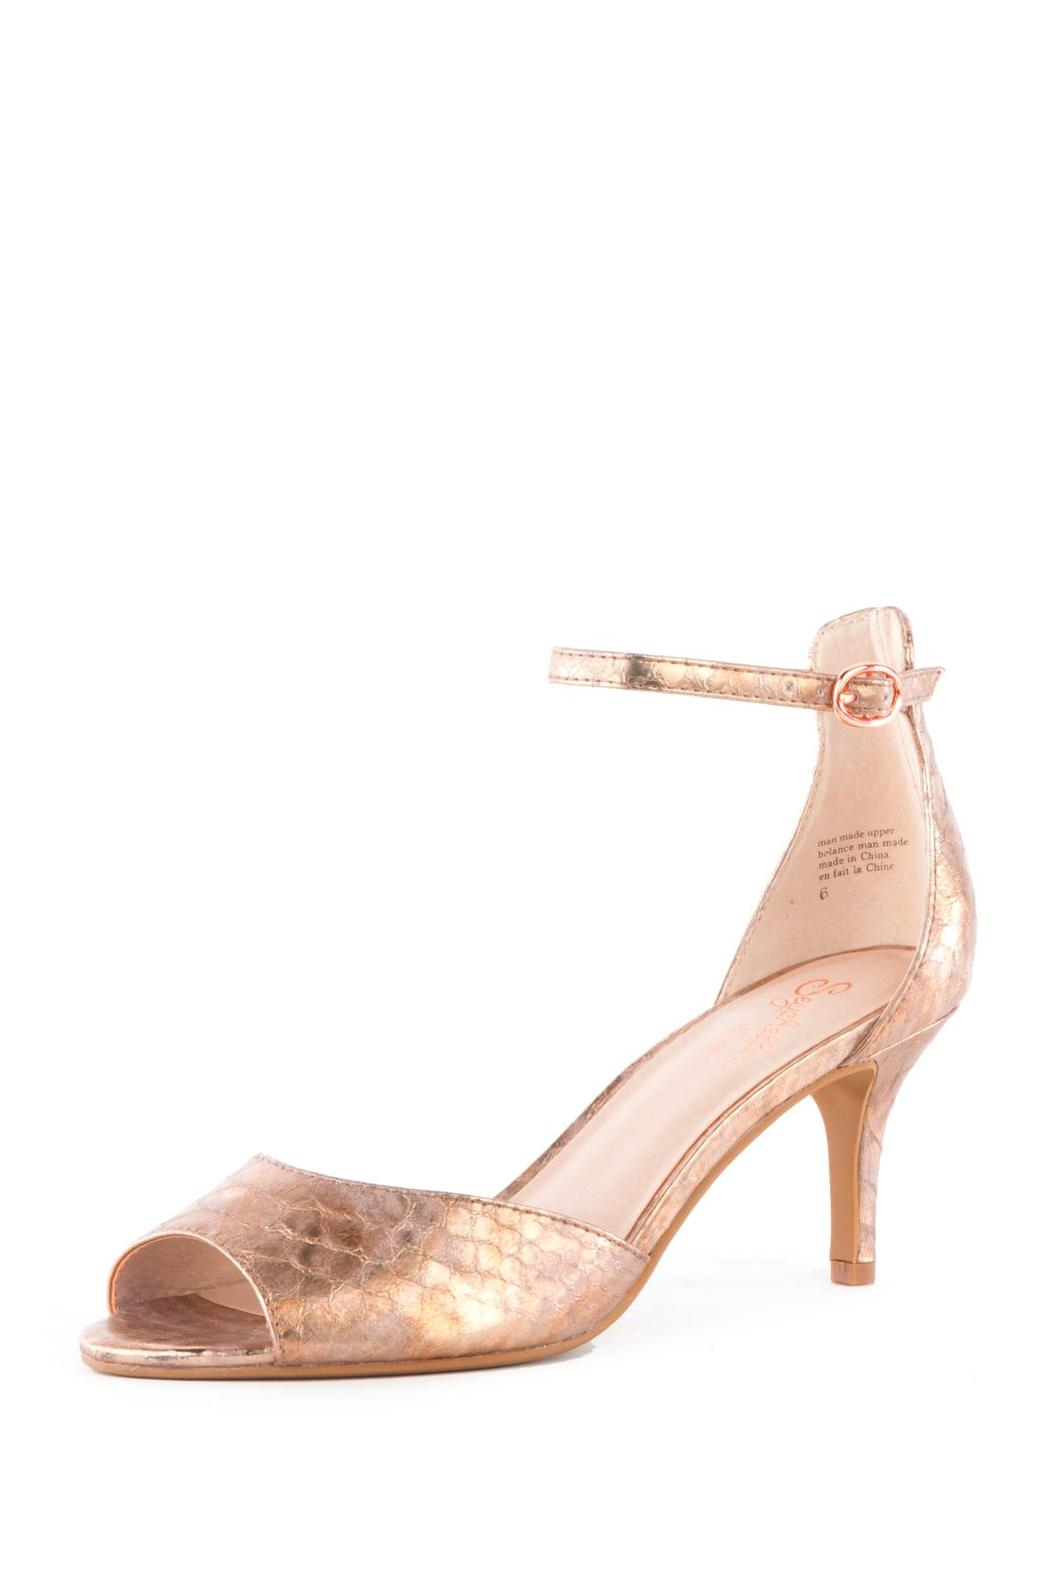 Seychelles Rose Gold Mid-Heel from Atlanta by Sole shoes ...